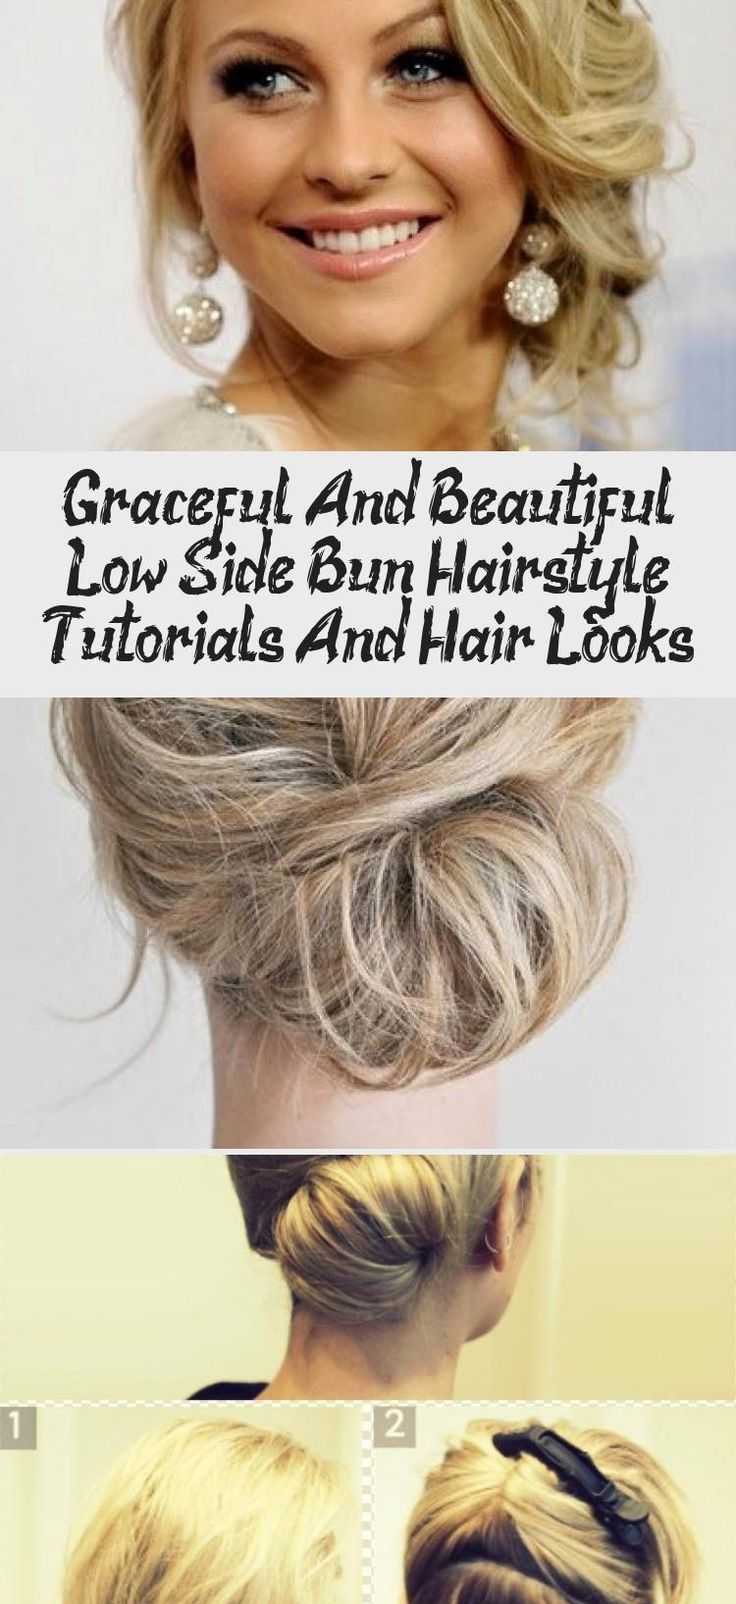 Graceful And Beautiful Low Side Bun Hairstyle Tutorials And Hair Looks #lowsidebuns Graceful And Beautiful Low Side Bun Hairstyle Tutorials And Hair Looks #lowsidebuns Graceful And Beautiful Low Side Bun Hairstyle Tutorials And Hair Looks #lowsidebuns Graceful And Beautiful Low Side Bun Hairstyle Tutorials And Hair Looks #lowsidebuns